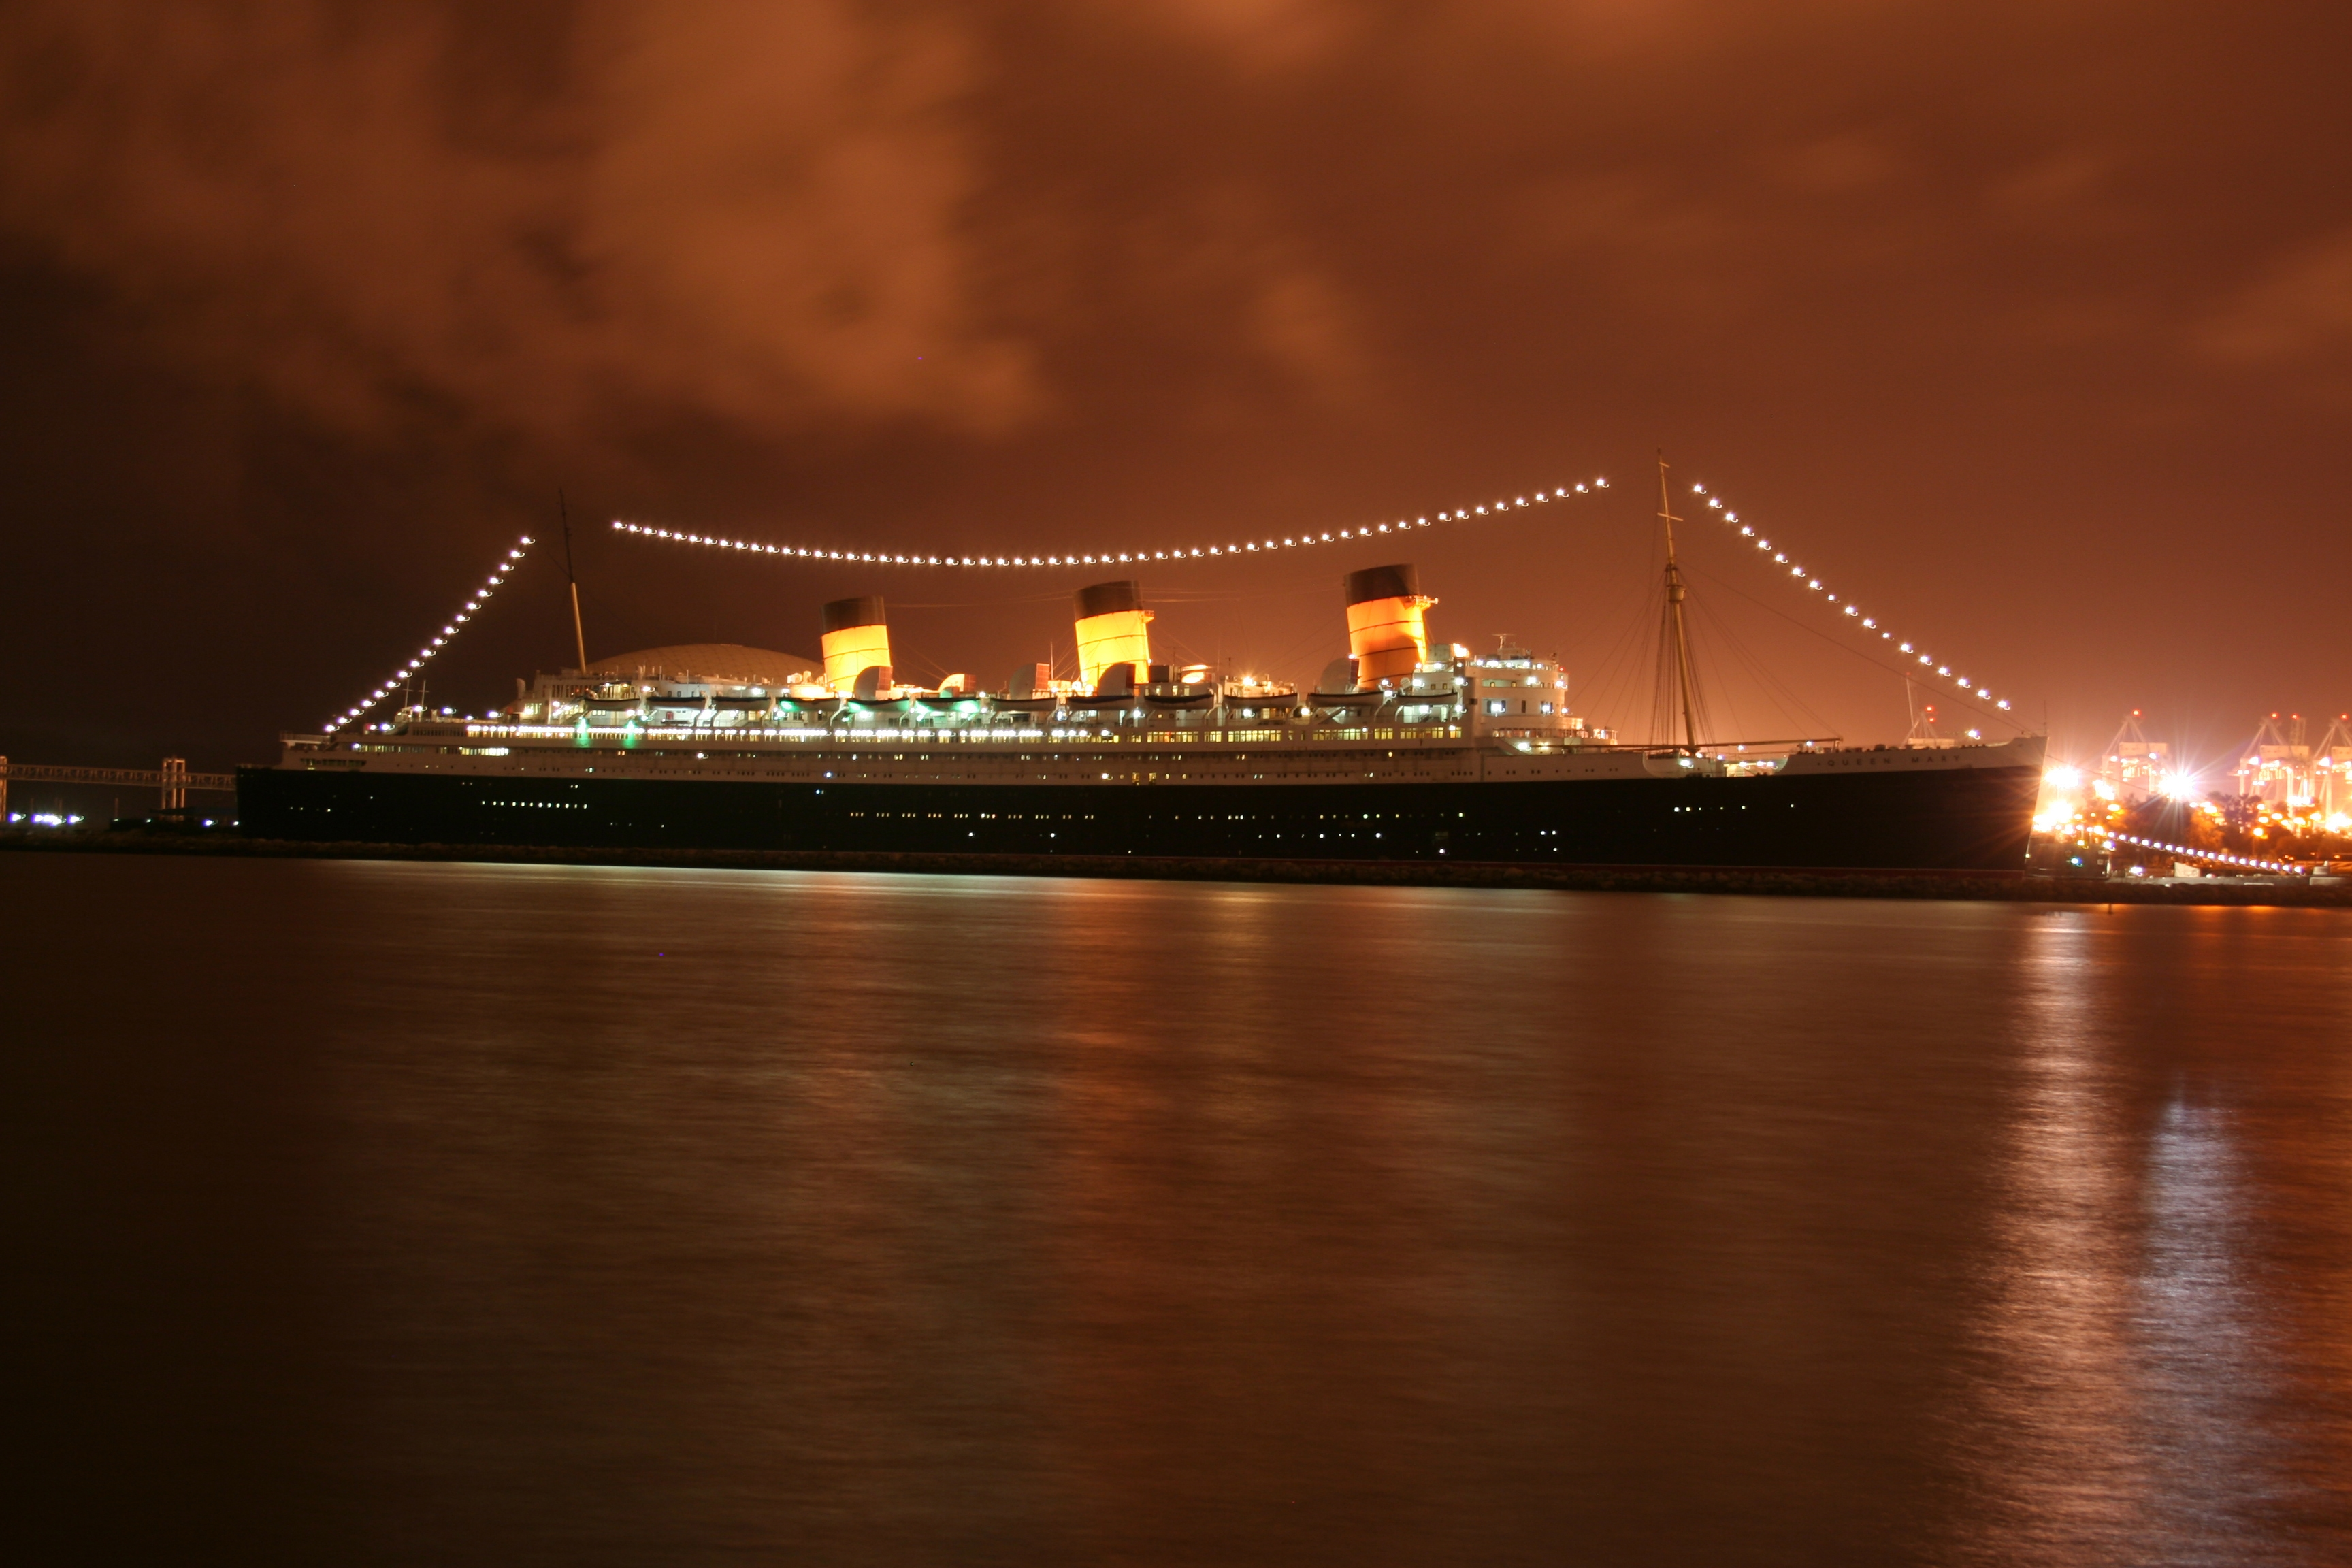 image courtesy The Queen Mary